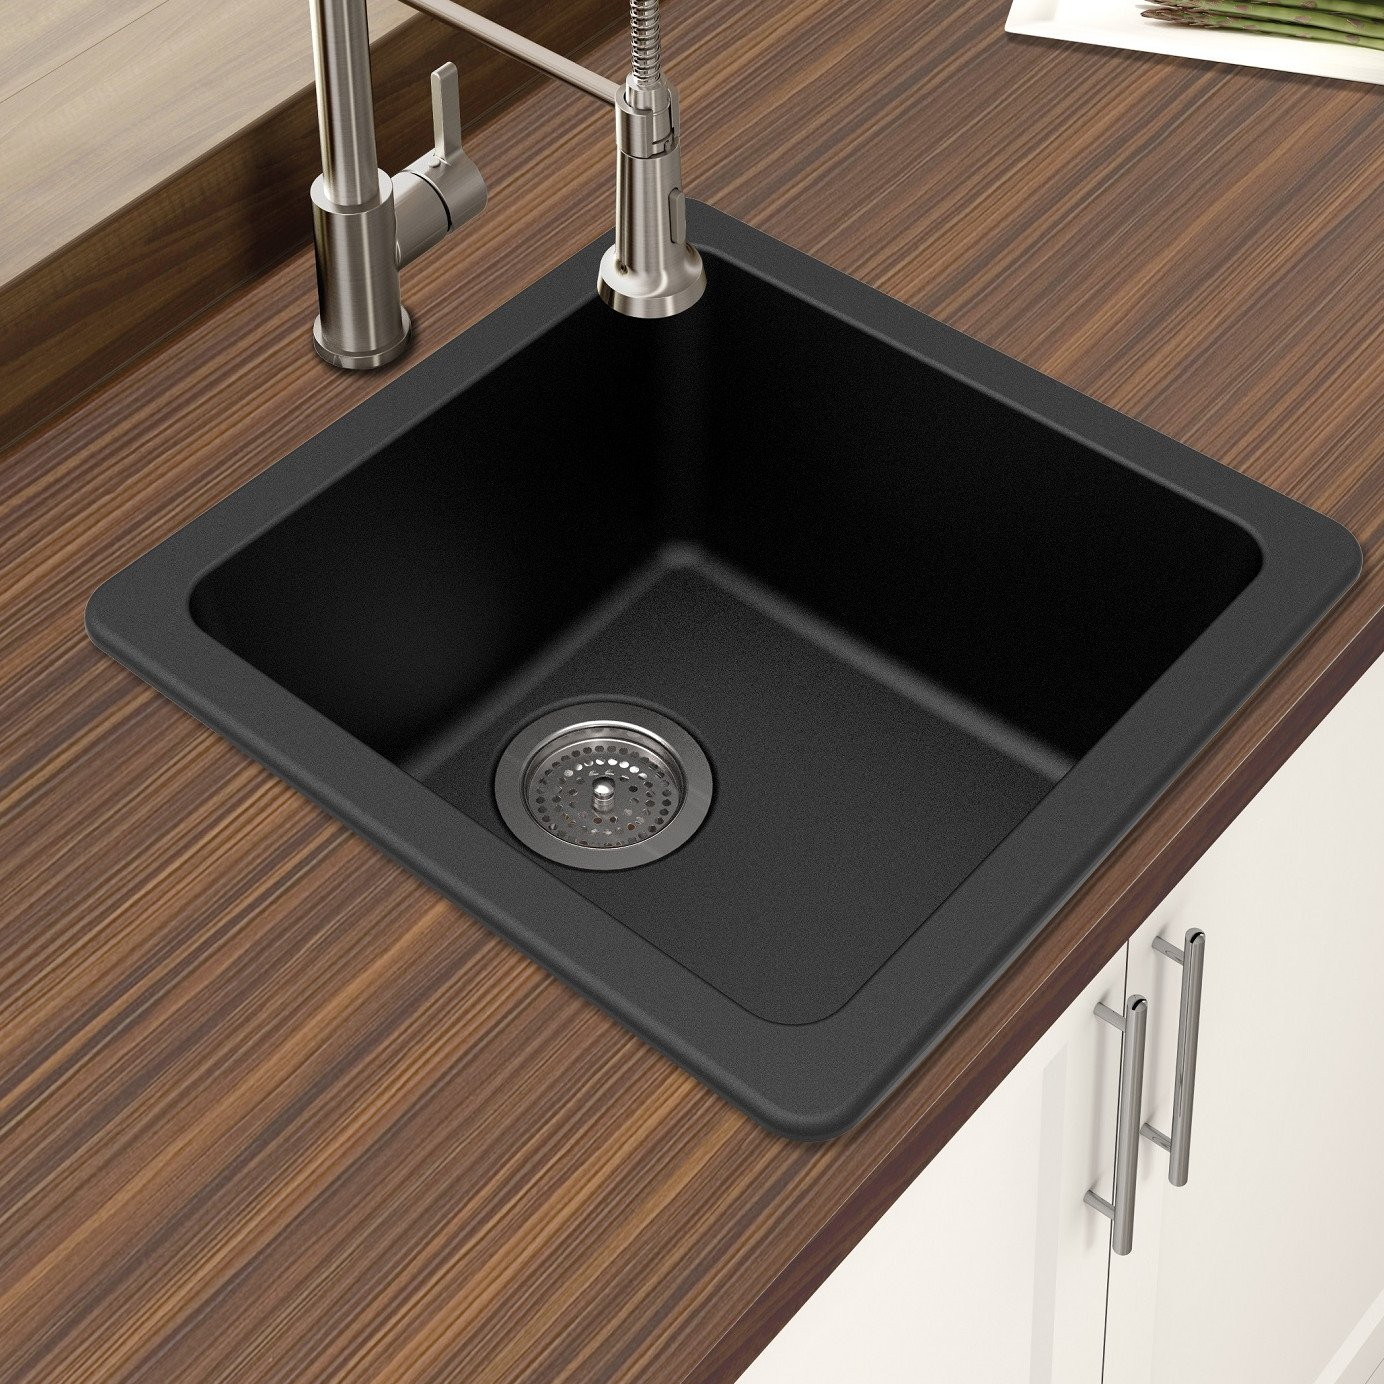 Winpro New Black Granite Quartz 16 5 8 x 16 5 8 x 8 Single Bowl Dual Mount Bar Sink